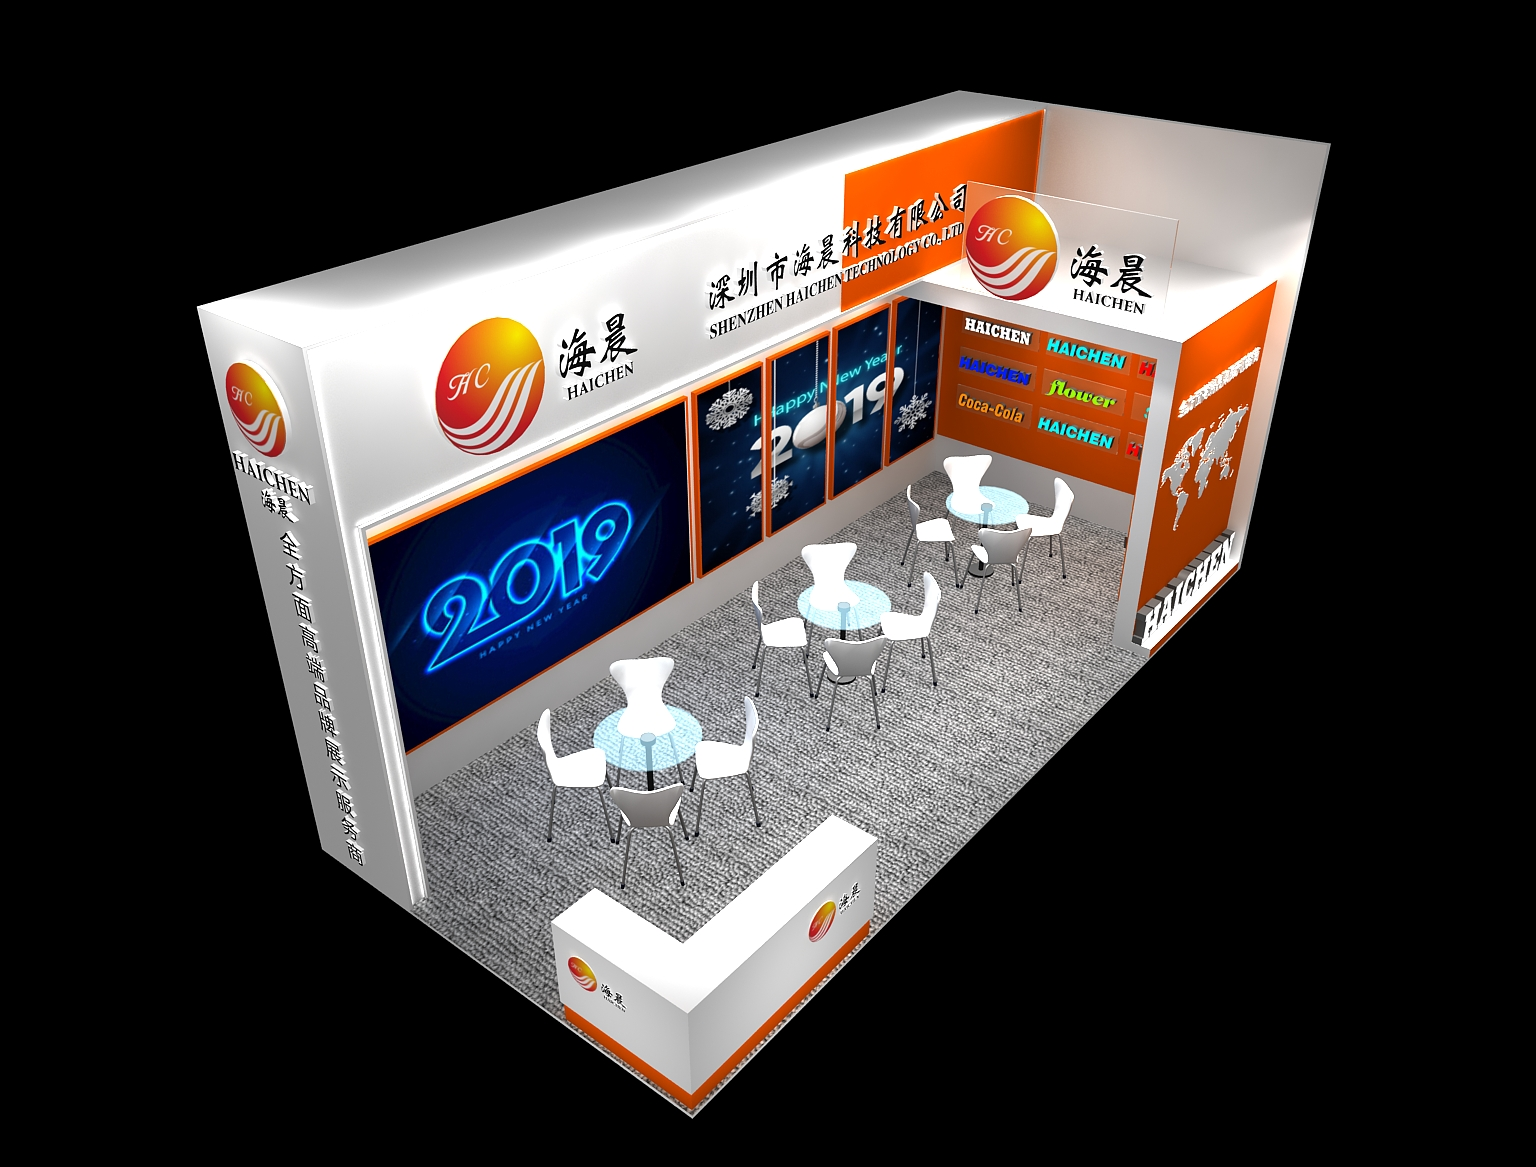 In march I met haichen at the 43rd China guangzhou international furniture fair